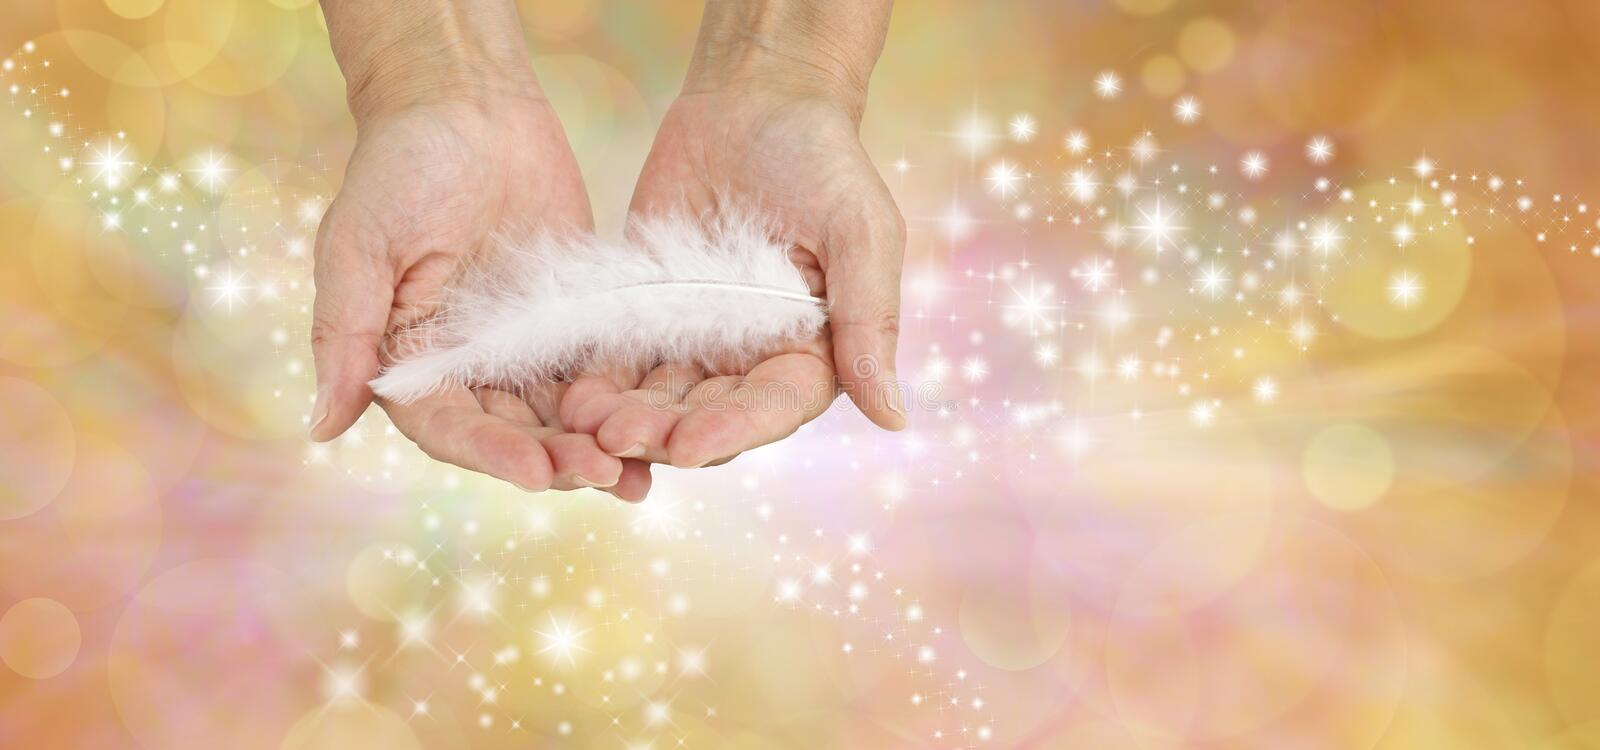 White feathers are the calling cards of Angels stock photos